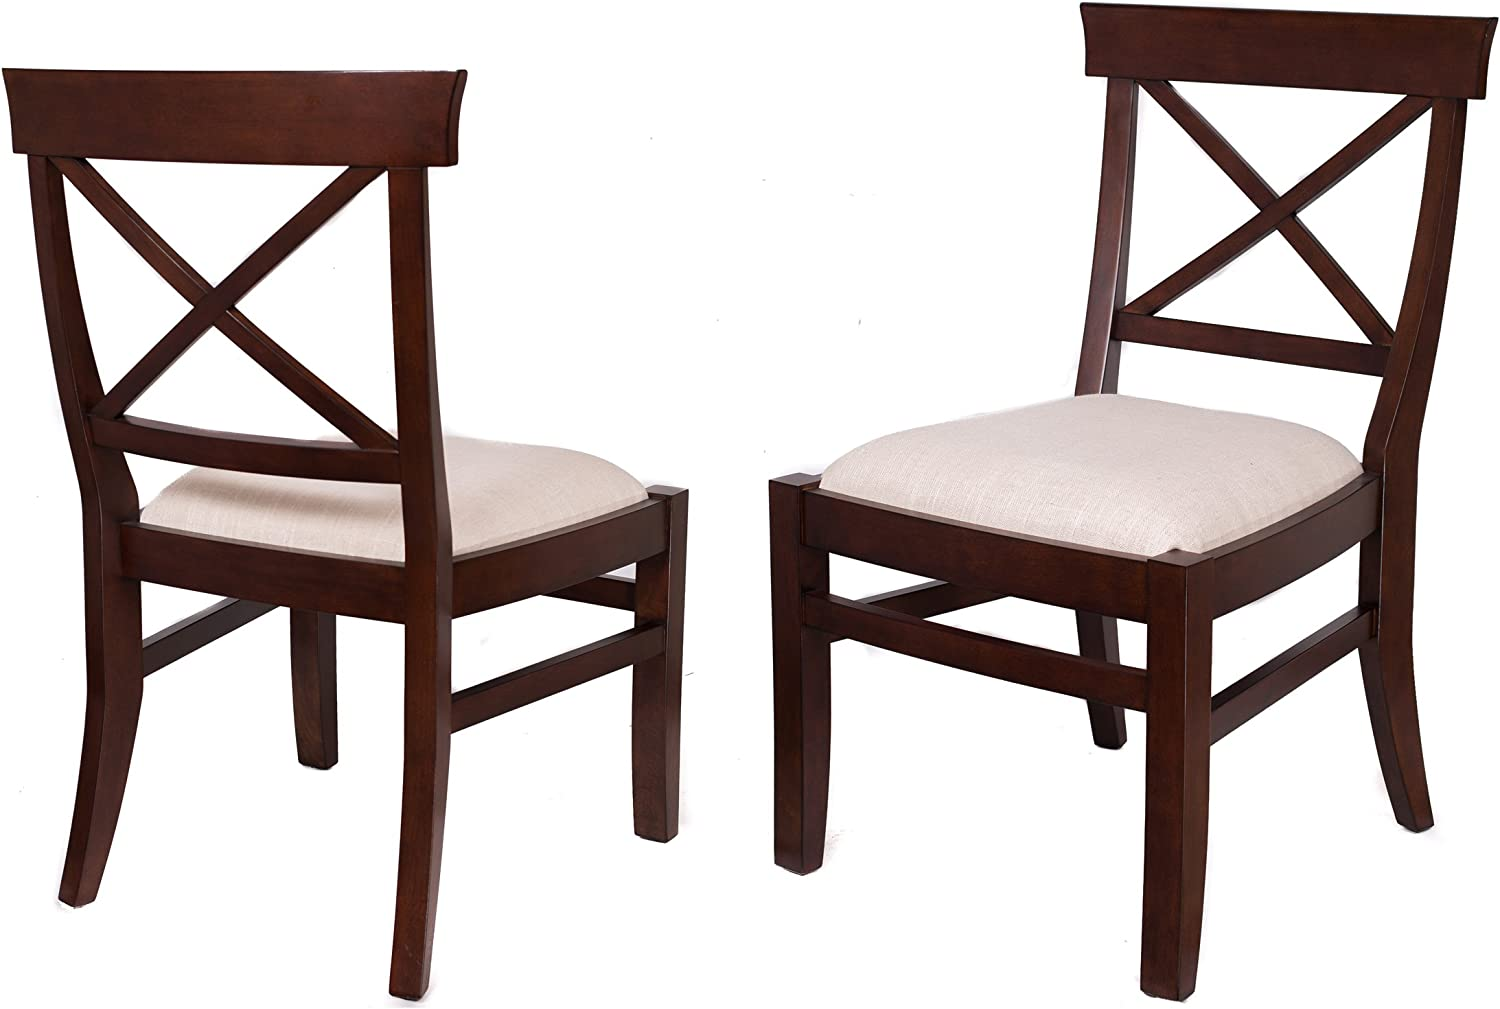 BIRDROCK HOME Crossback Side Chairs – 2pc – Delivered Fully Assembled Mahogany, Upholstered Side Chair